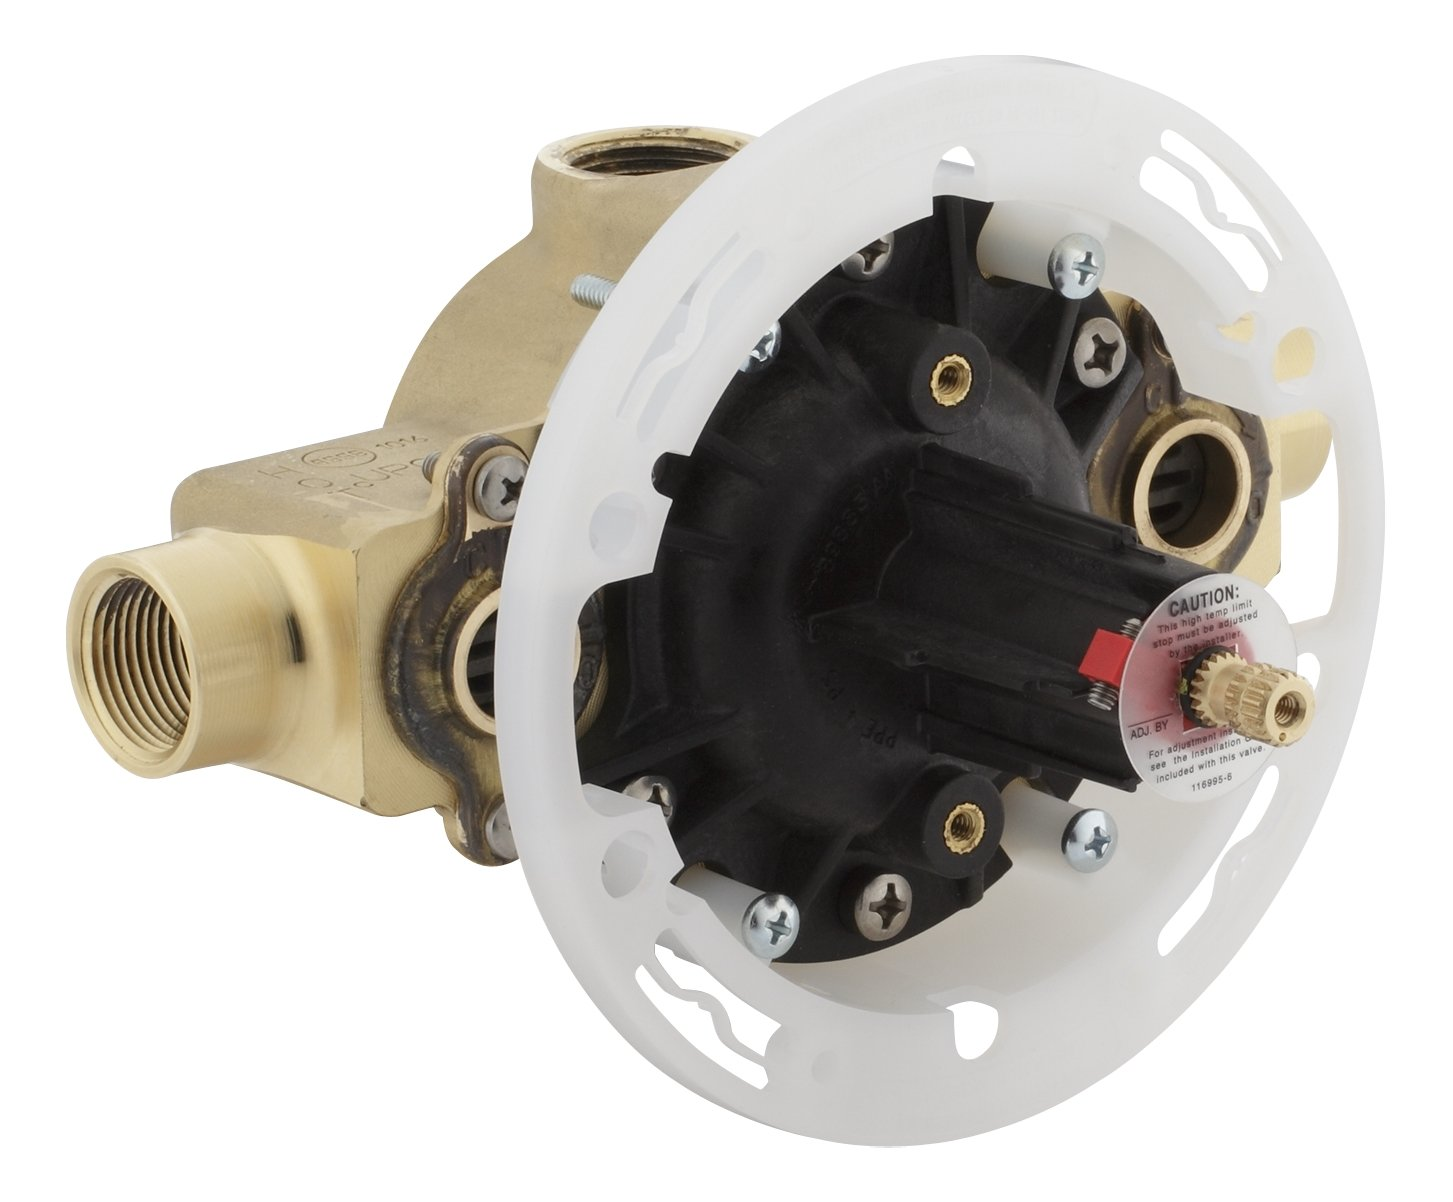 Kohler K-2971-KS-NA High Flow Rite-Temp Pressure Balancing Valve with Stops, Not Applicable by Kohler